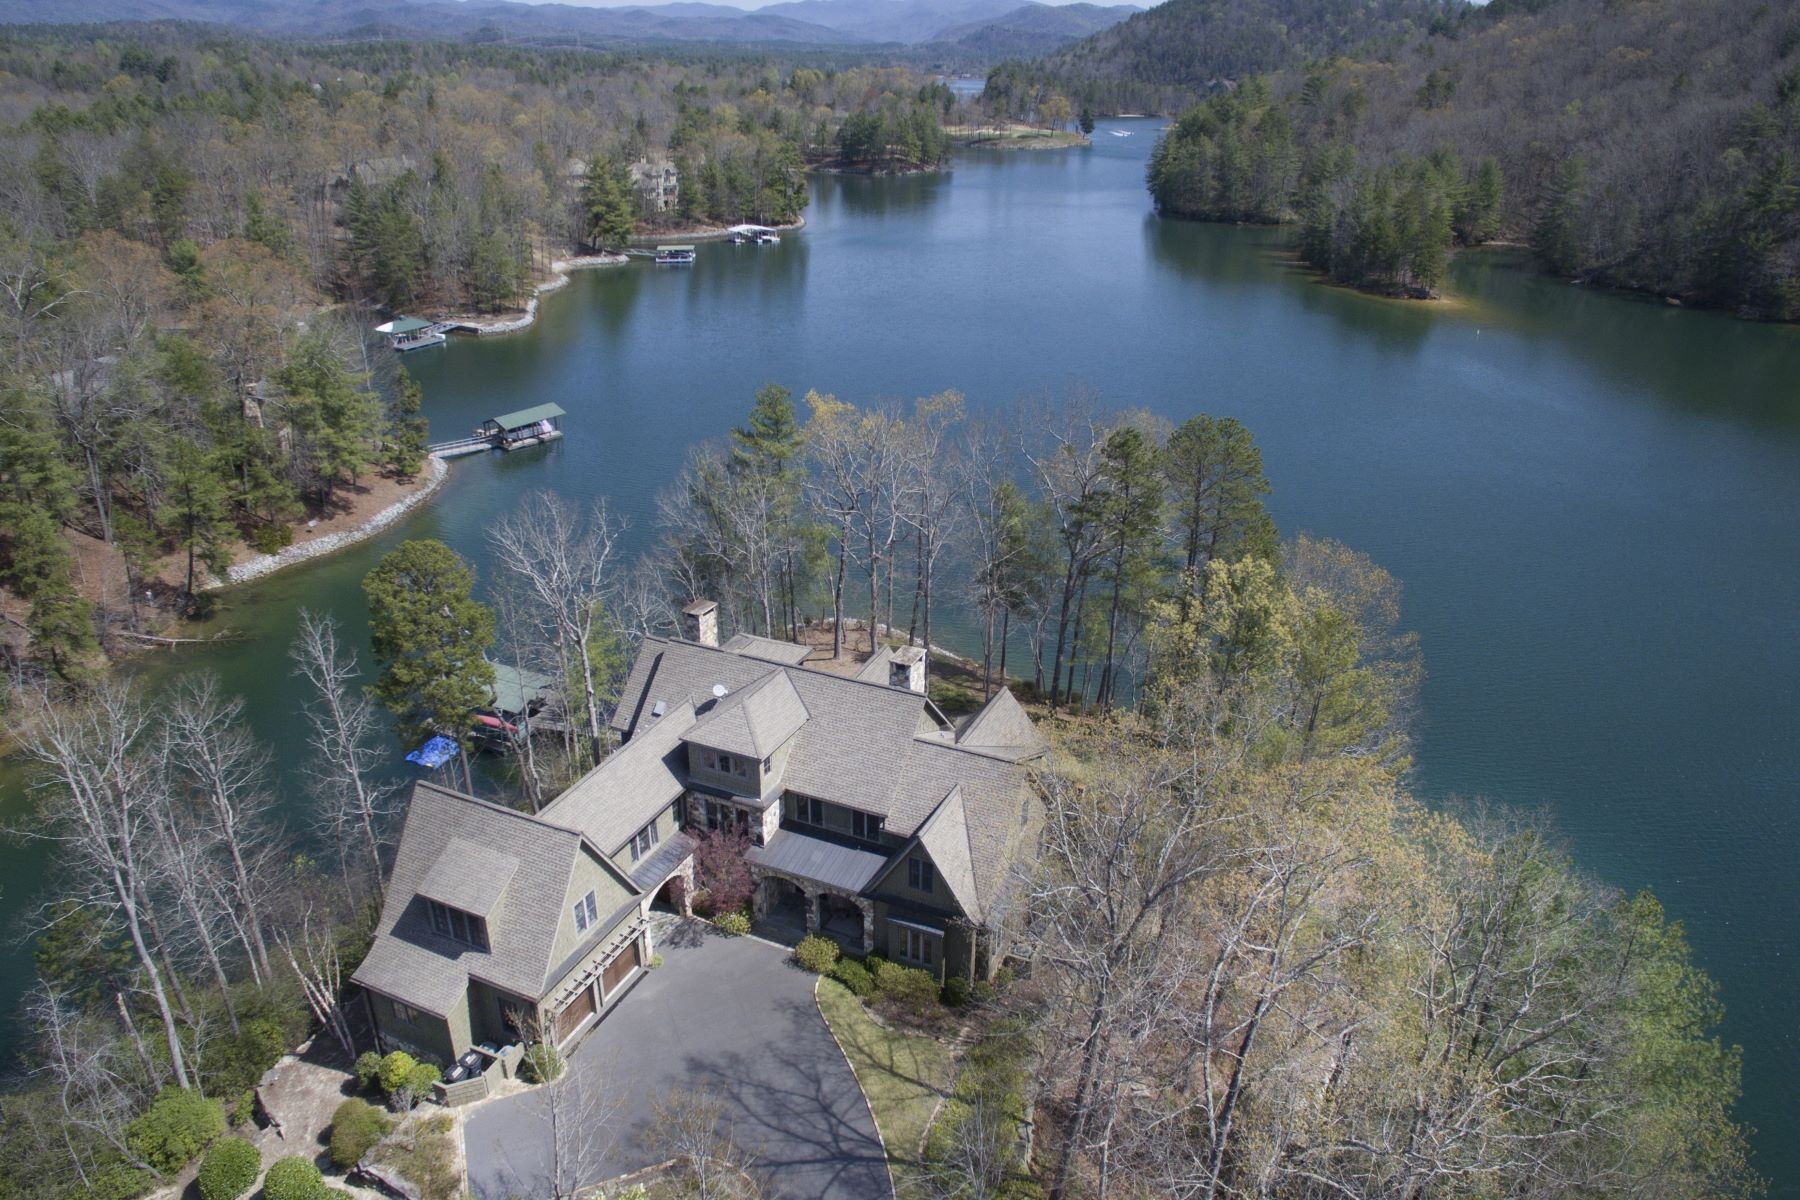 Single Family Home for Sale at One of the Finest Homes at The Vineyards- Impeccably Detailed Waterfront Home 805 Wind Flower Drive The Cliffs At Keowee Vineyards, Sunset, South Carolina, 29685 United States